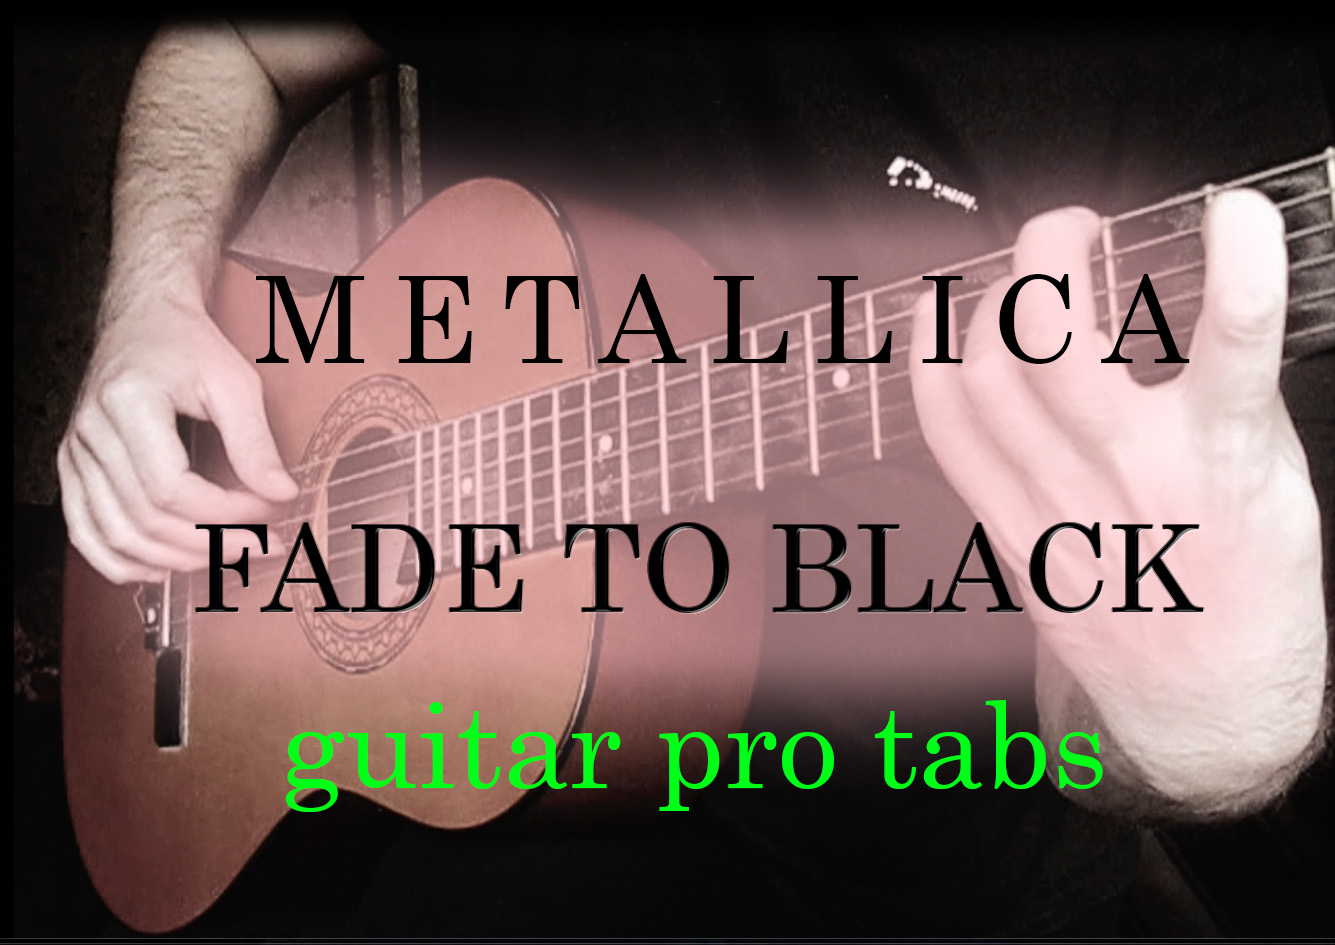 Metallica - Fade to black (табы в guitar pro)